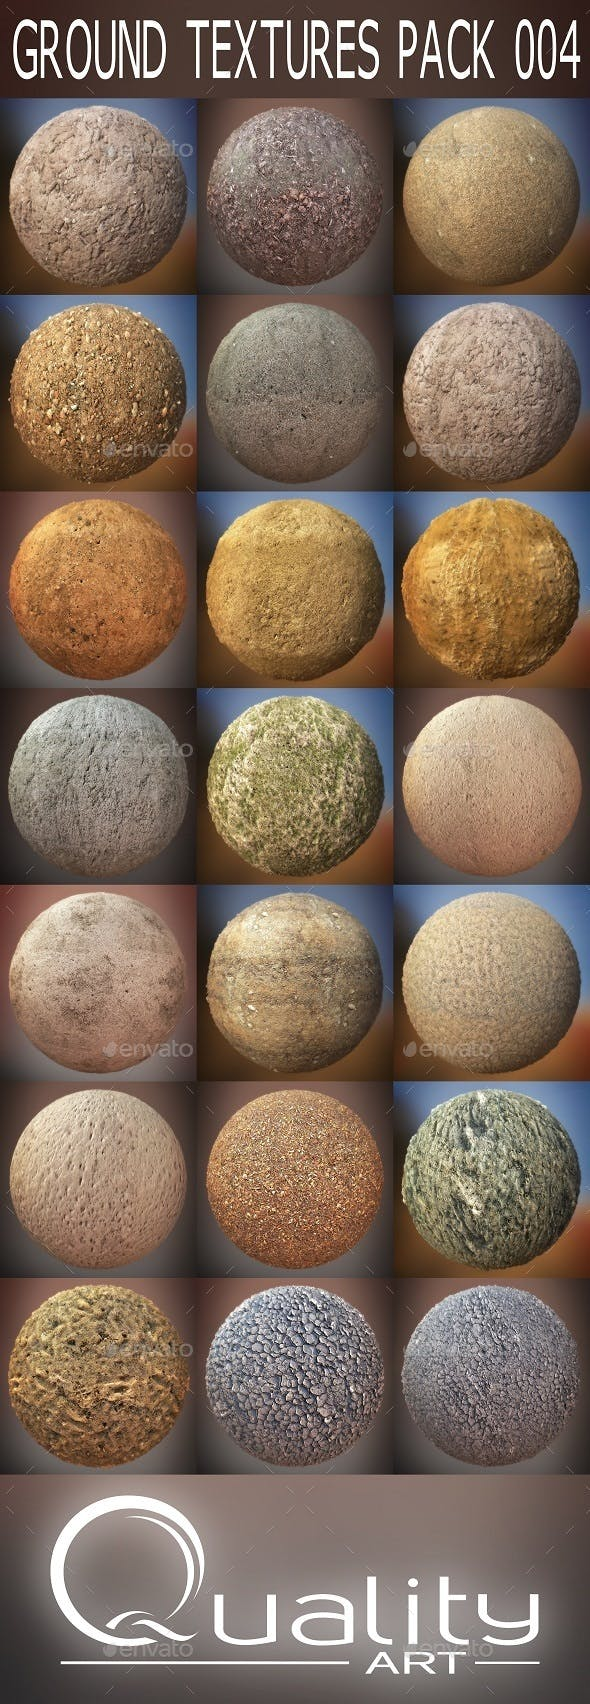 Ground Textures Pack 004 - 3DOcean Item for Sale